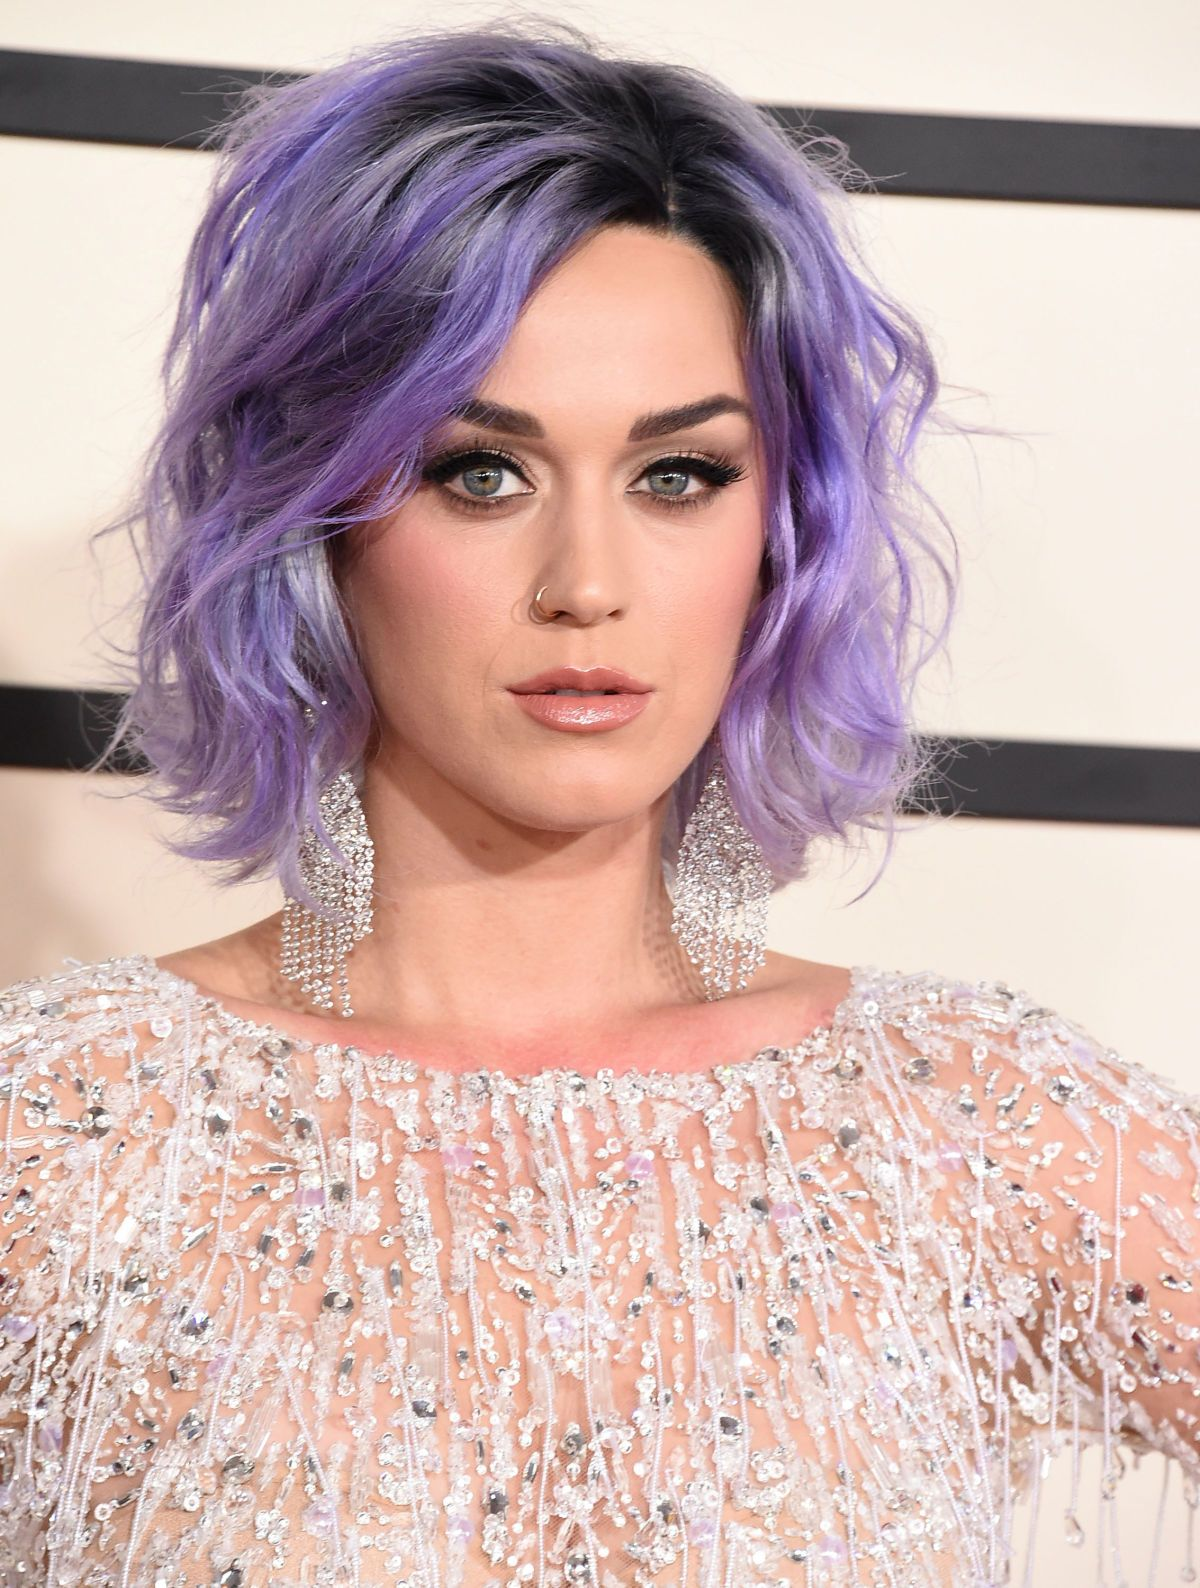 Hereus how to get katy perryus grammys makeup look hairstyle loves